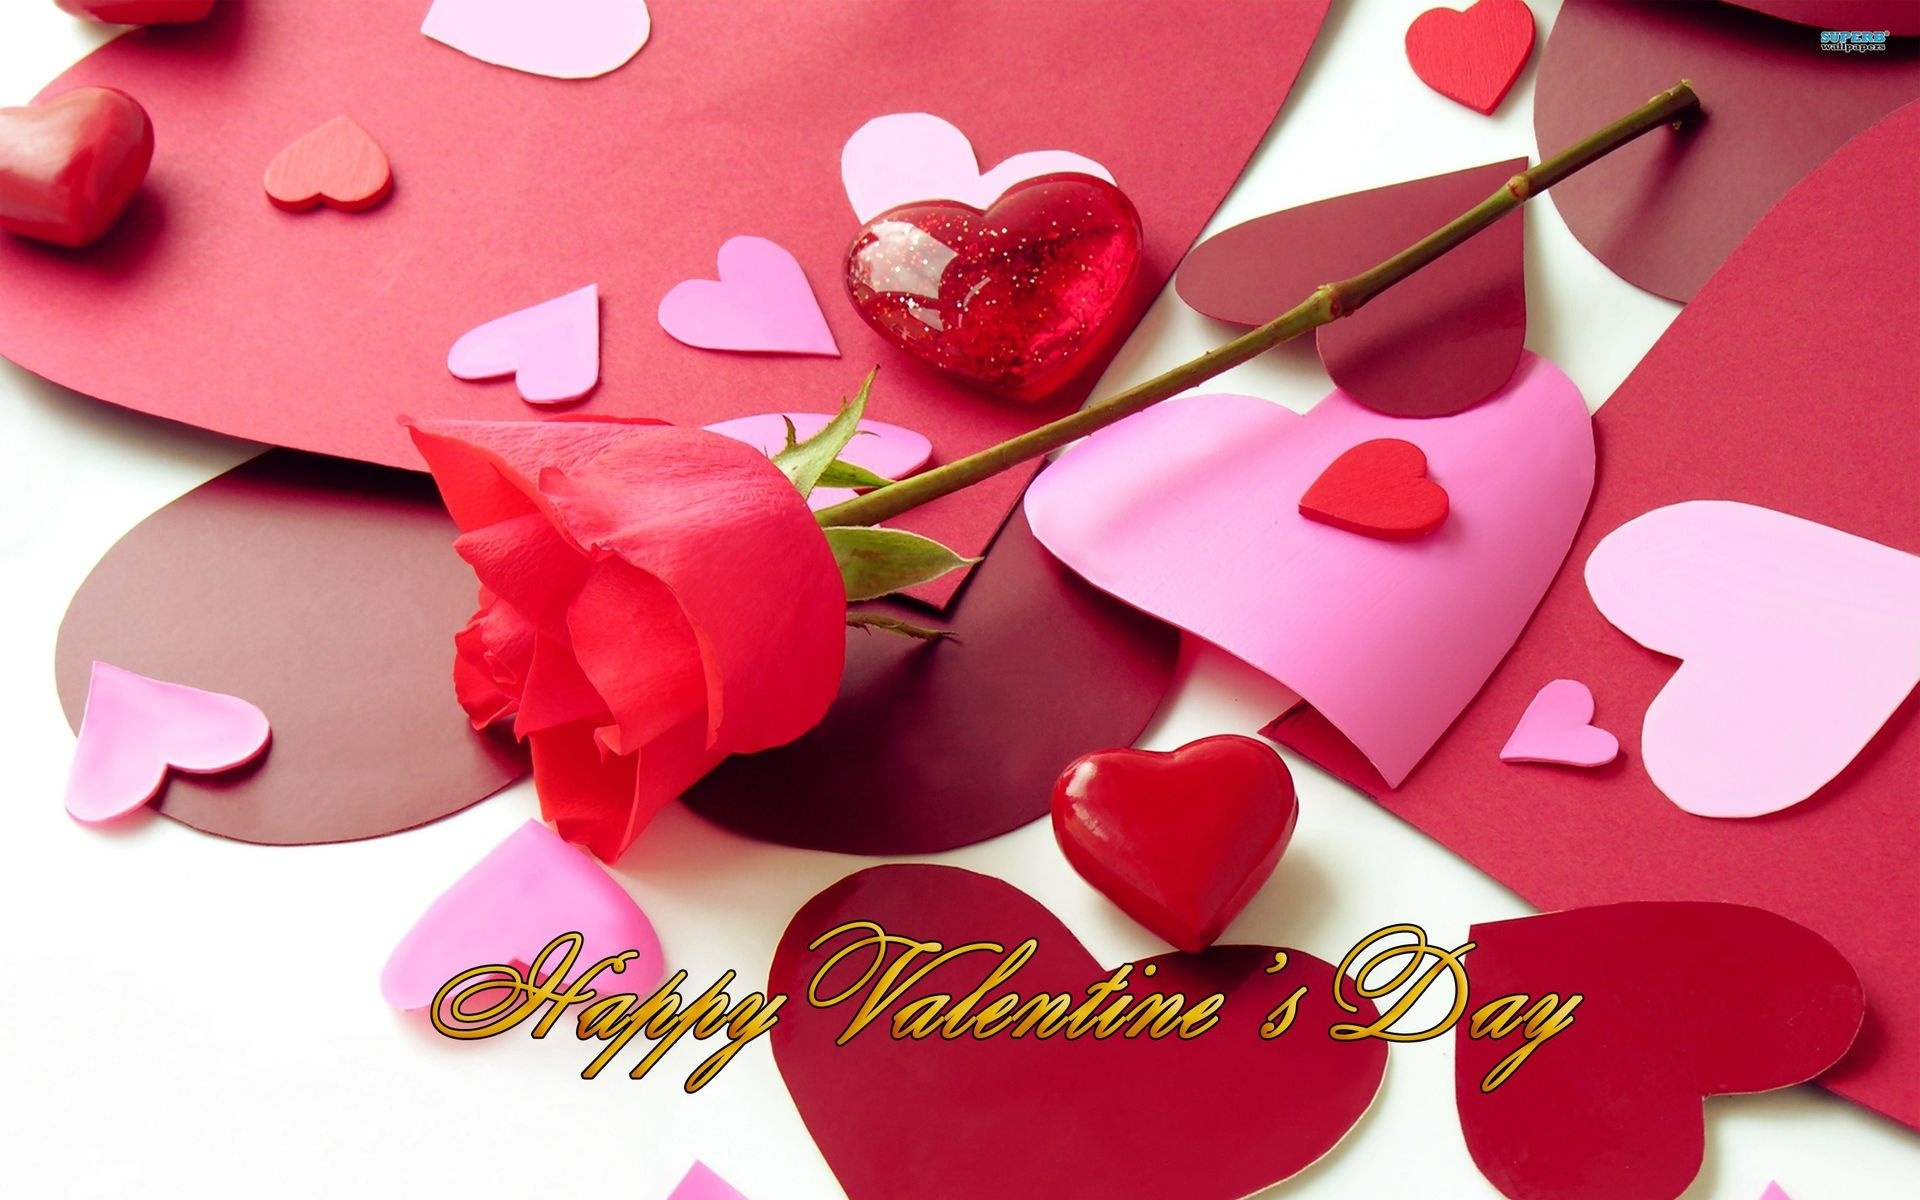 Valentine's Day 2014 Wallpapers